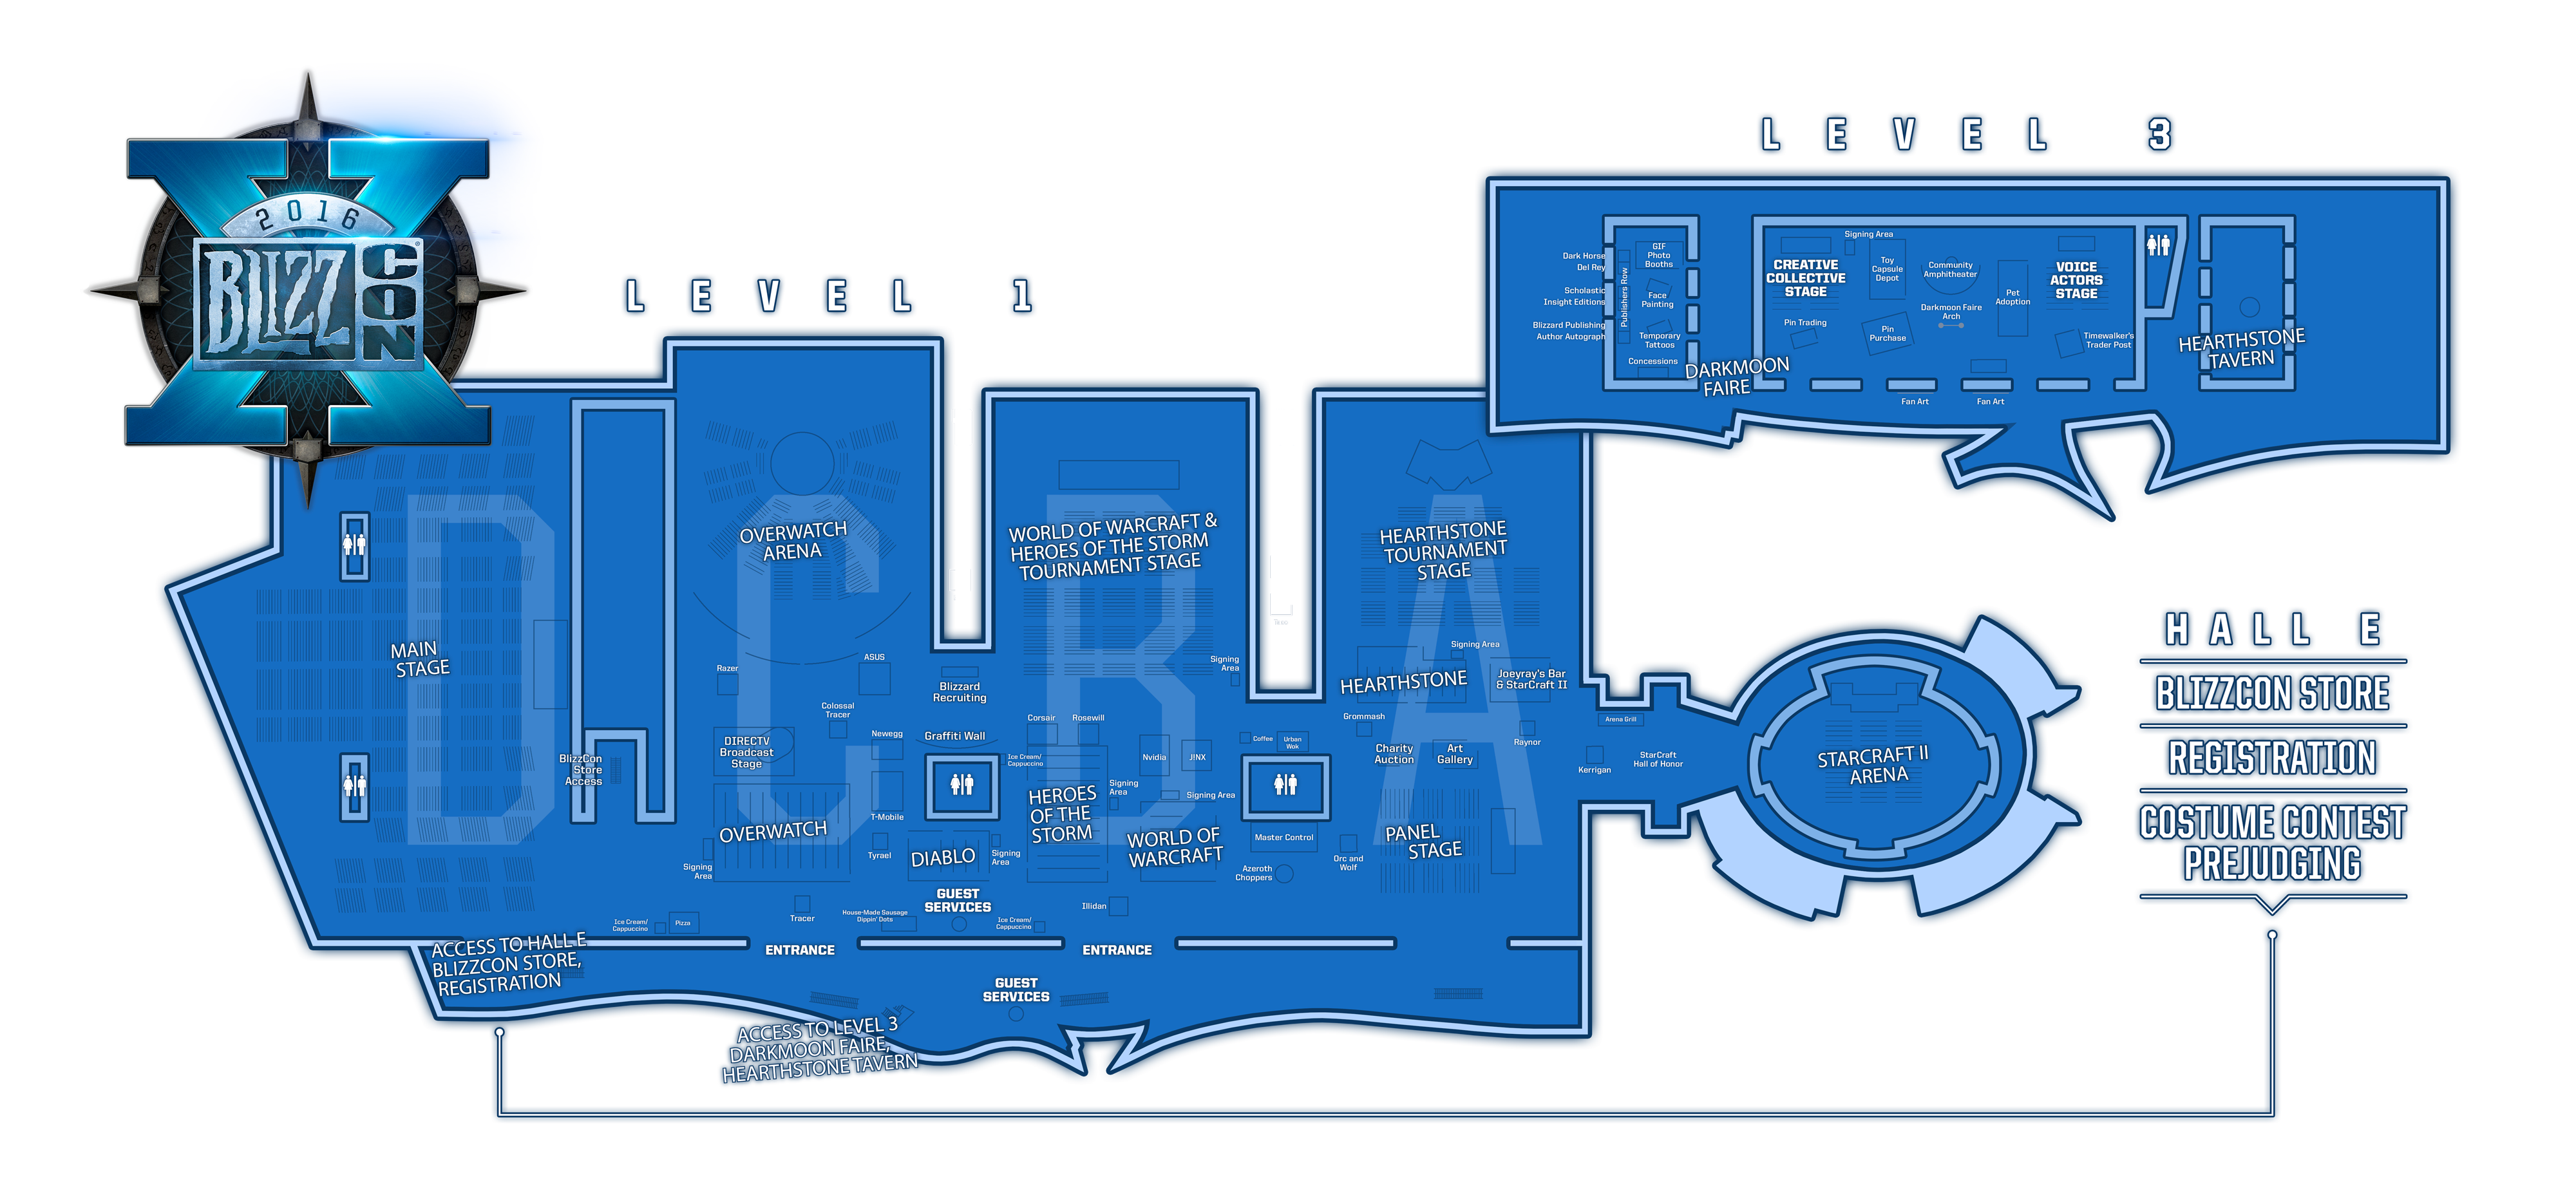 Blizzcon 2018 Floor Map Page 2